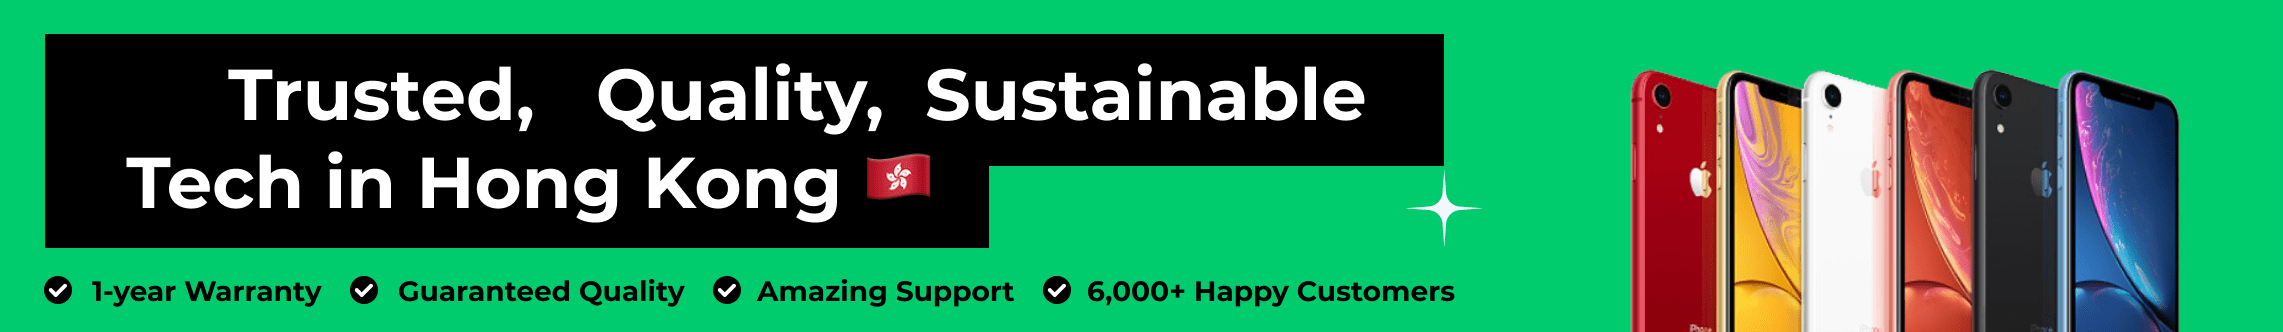 Trusted Quality Sustainable Tech in Hong Kong